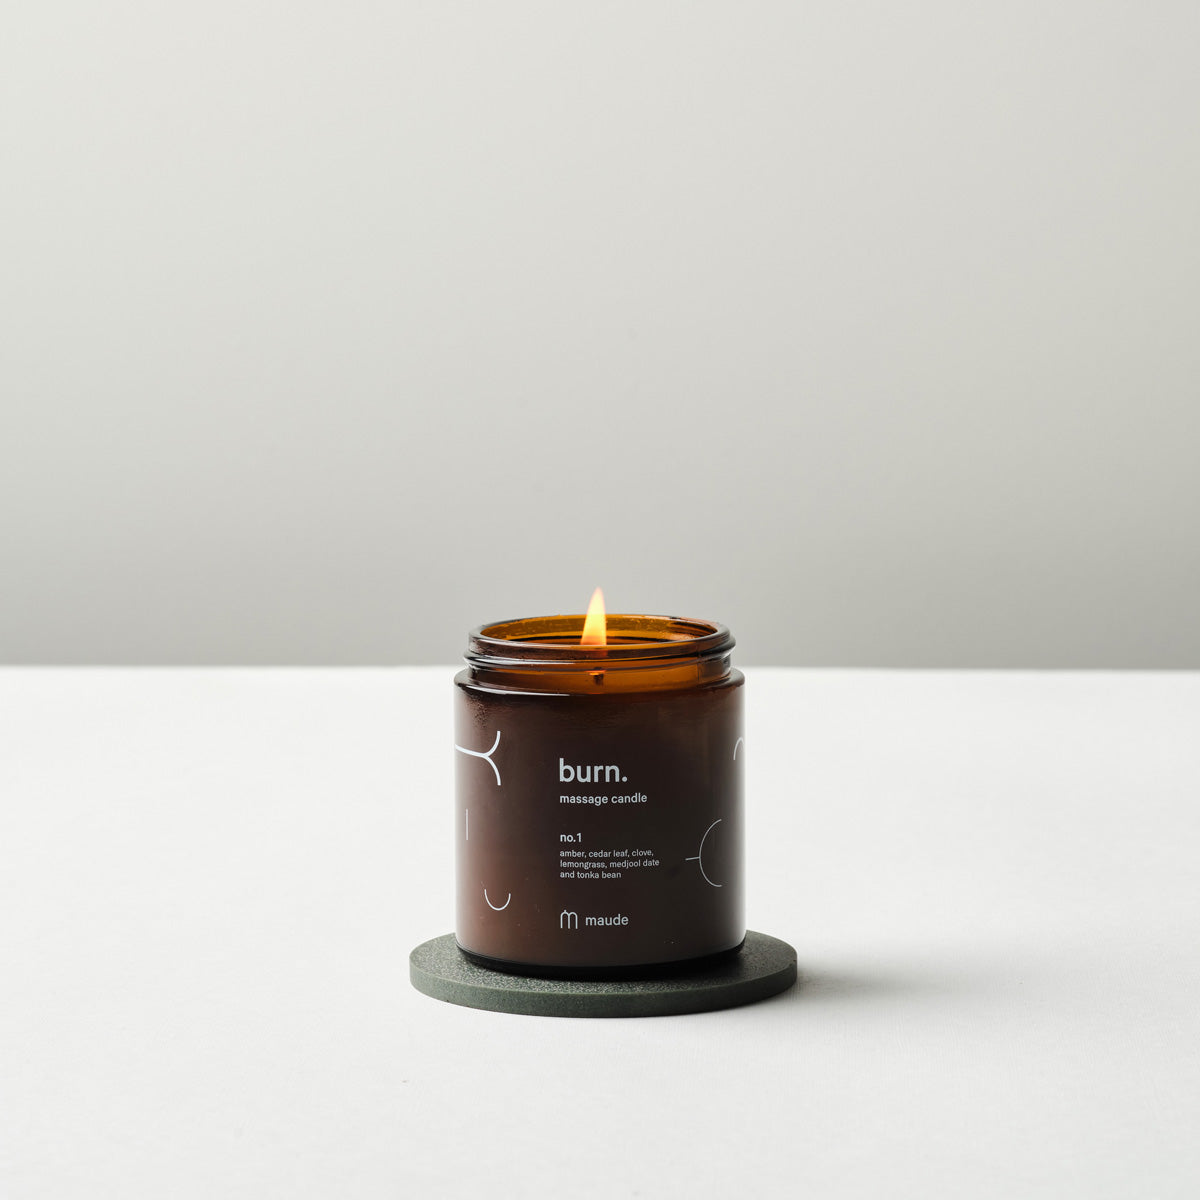 Burn Massage Candle - Salix Intimates